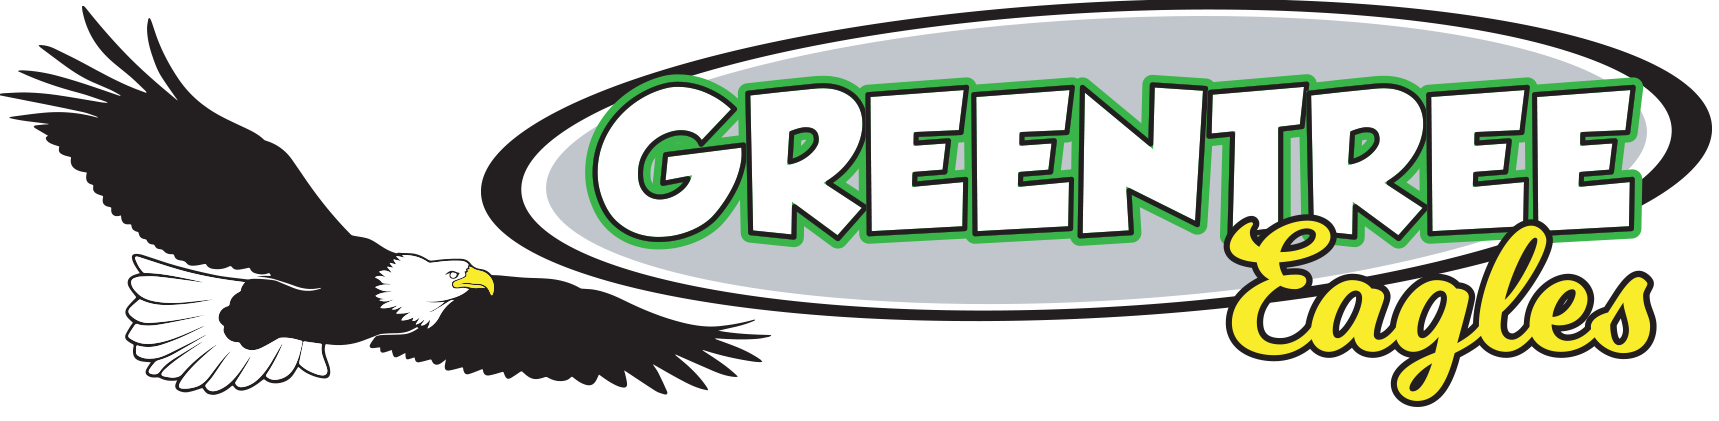 Library media center greentree. Support clipart school support